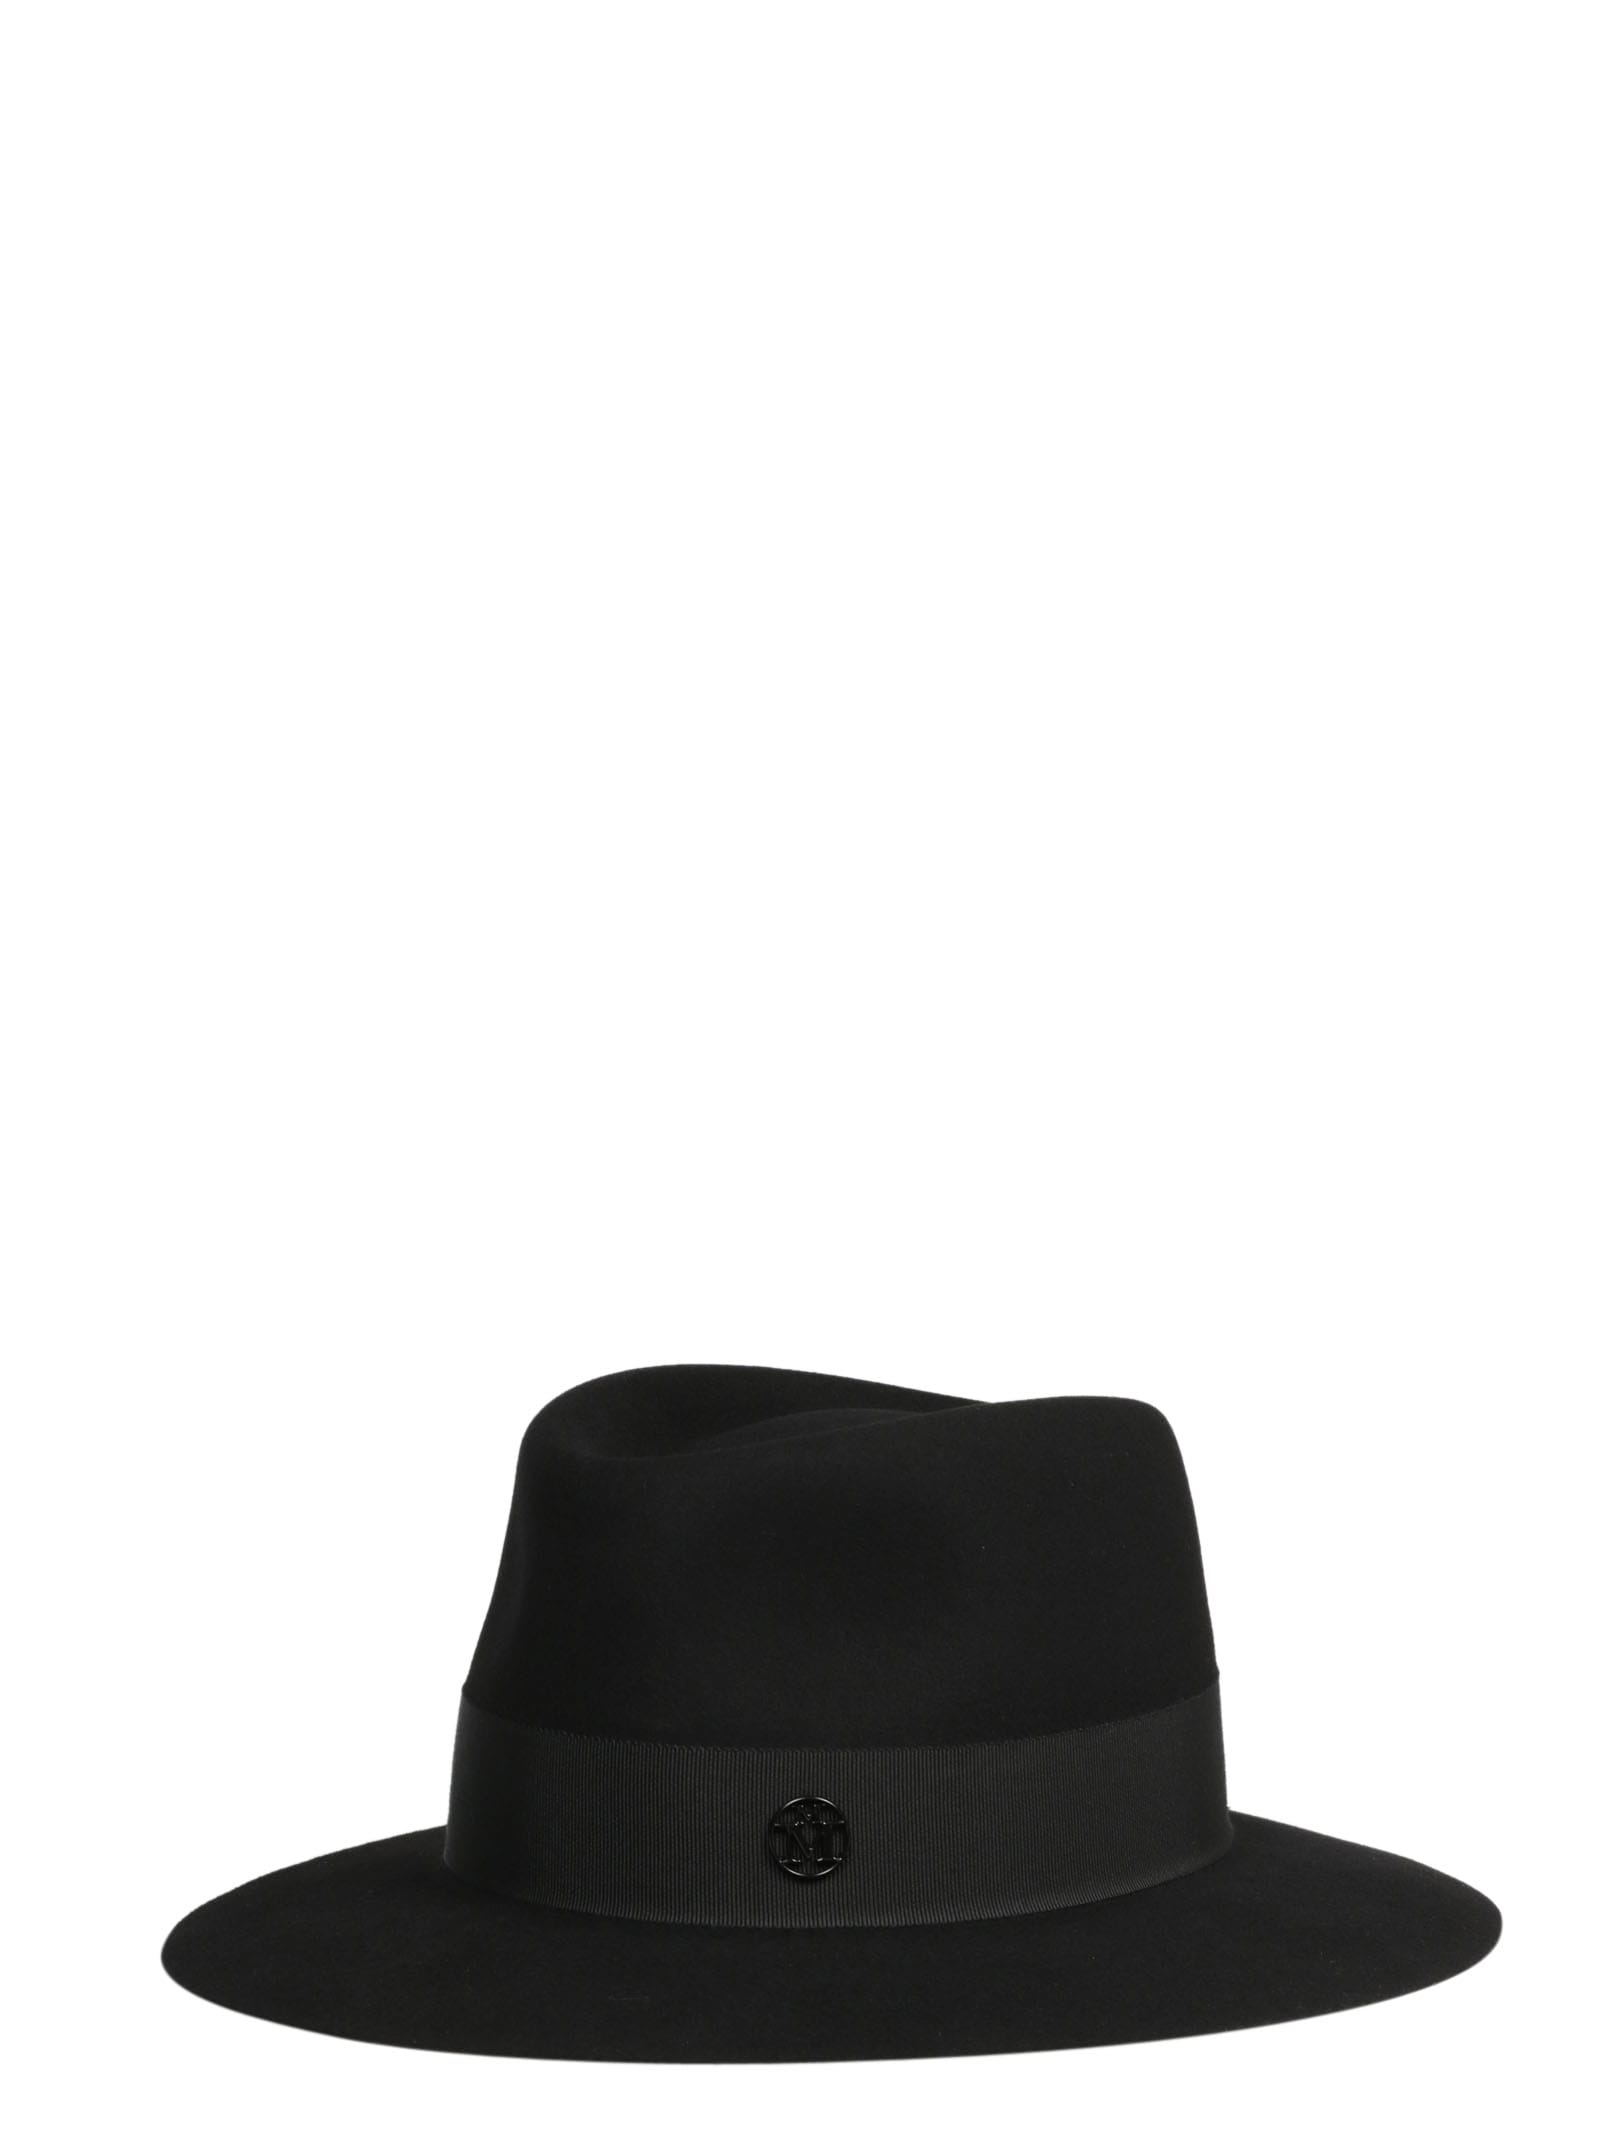 Maison Michel ANDRE HAT BLACK RABBIT